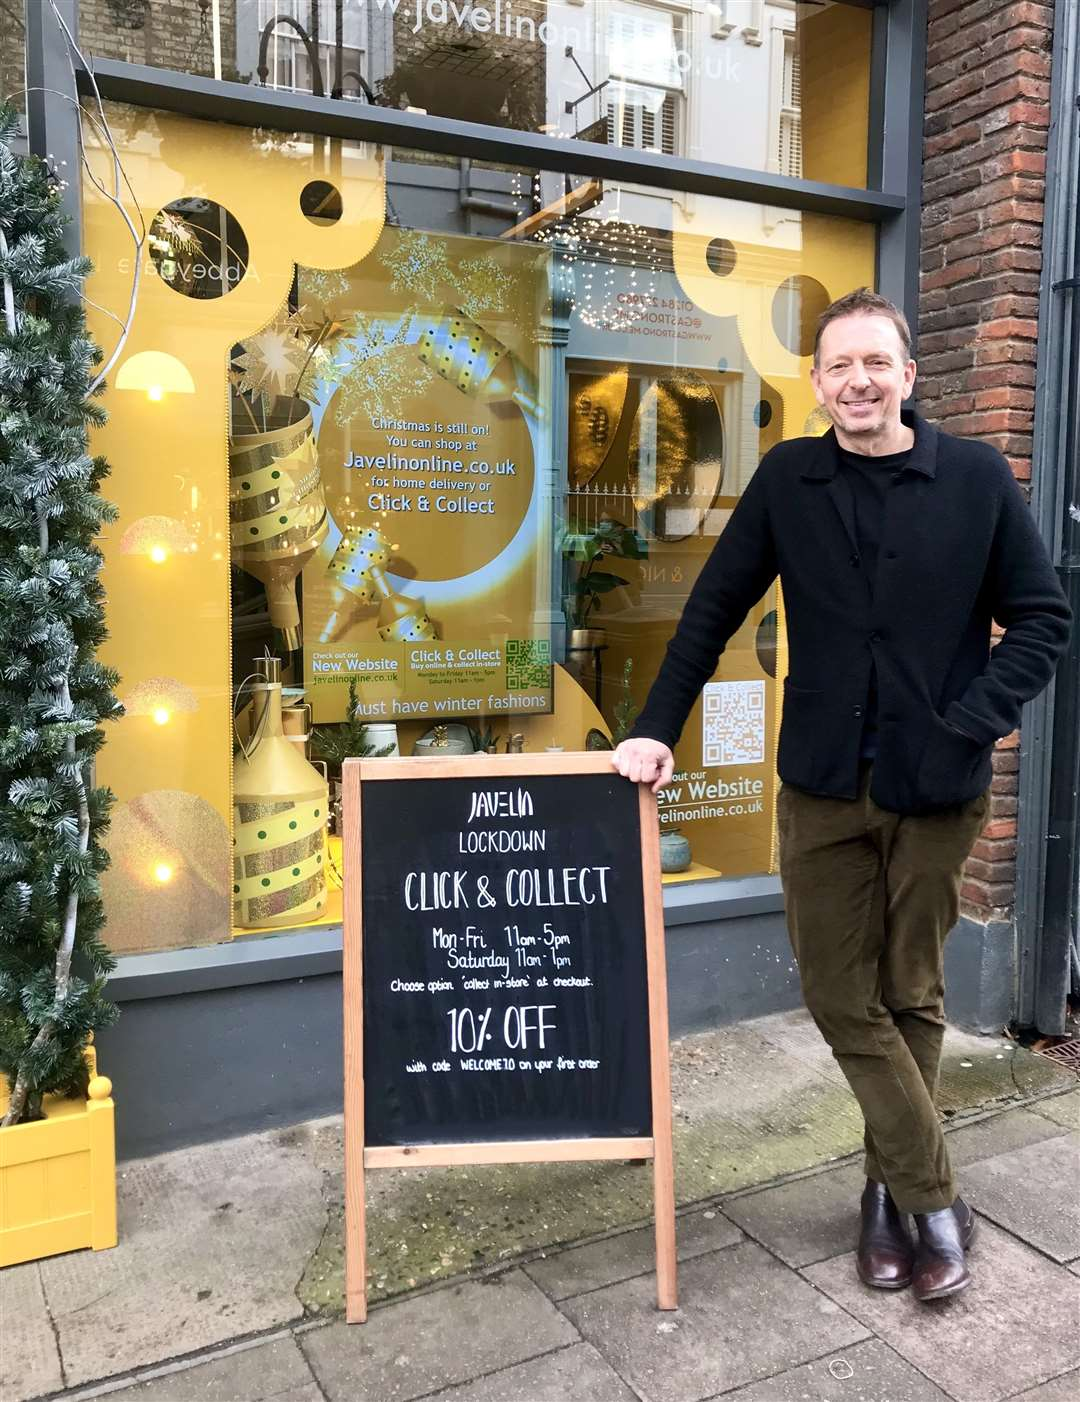 Jeremy Clayton, owner of Javelin, with the Bury St Edmunds shop's Christmas window display